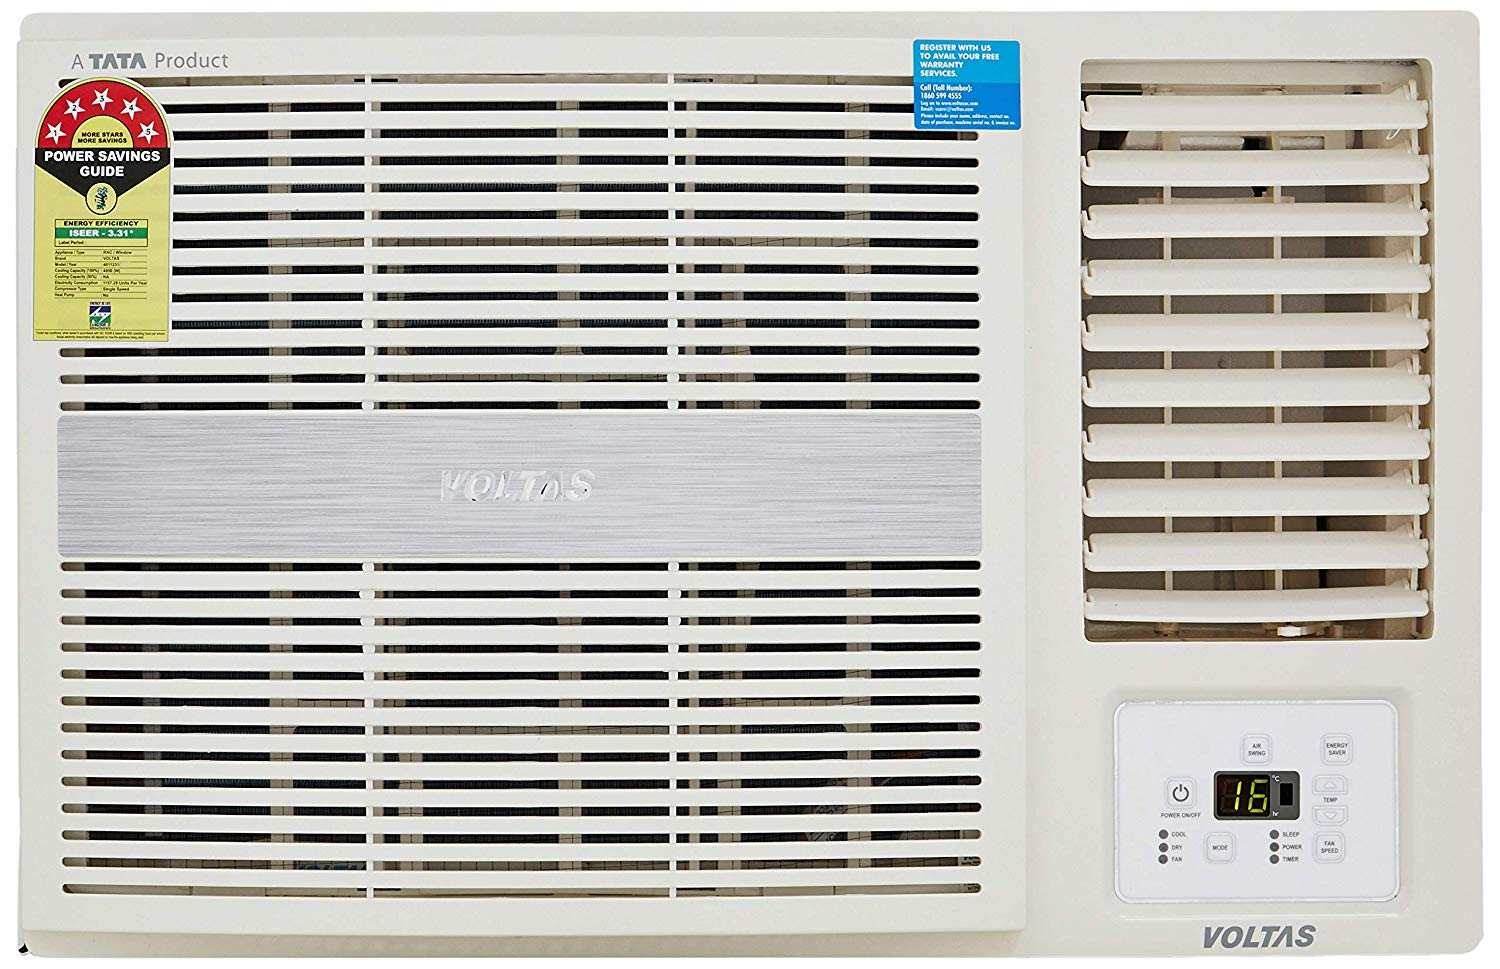 Voltas 1.5 Ton Windows AC